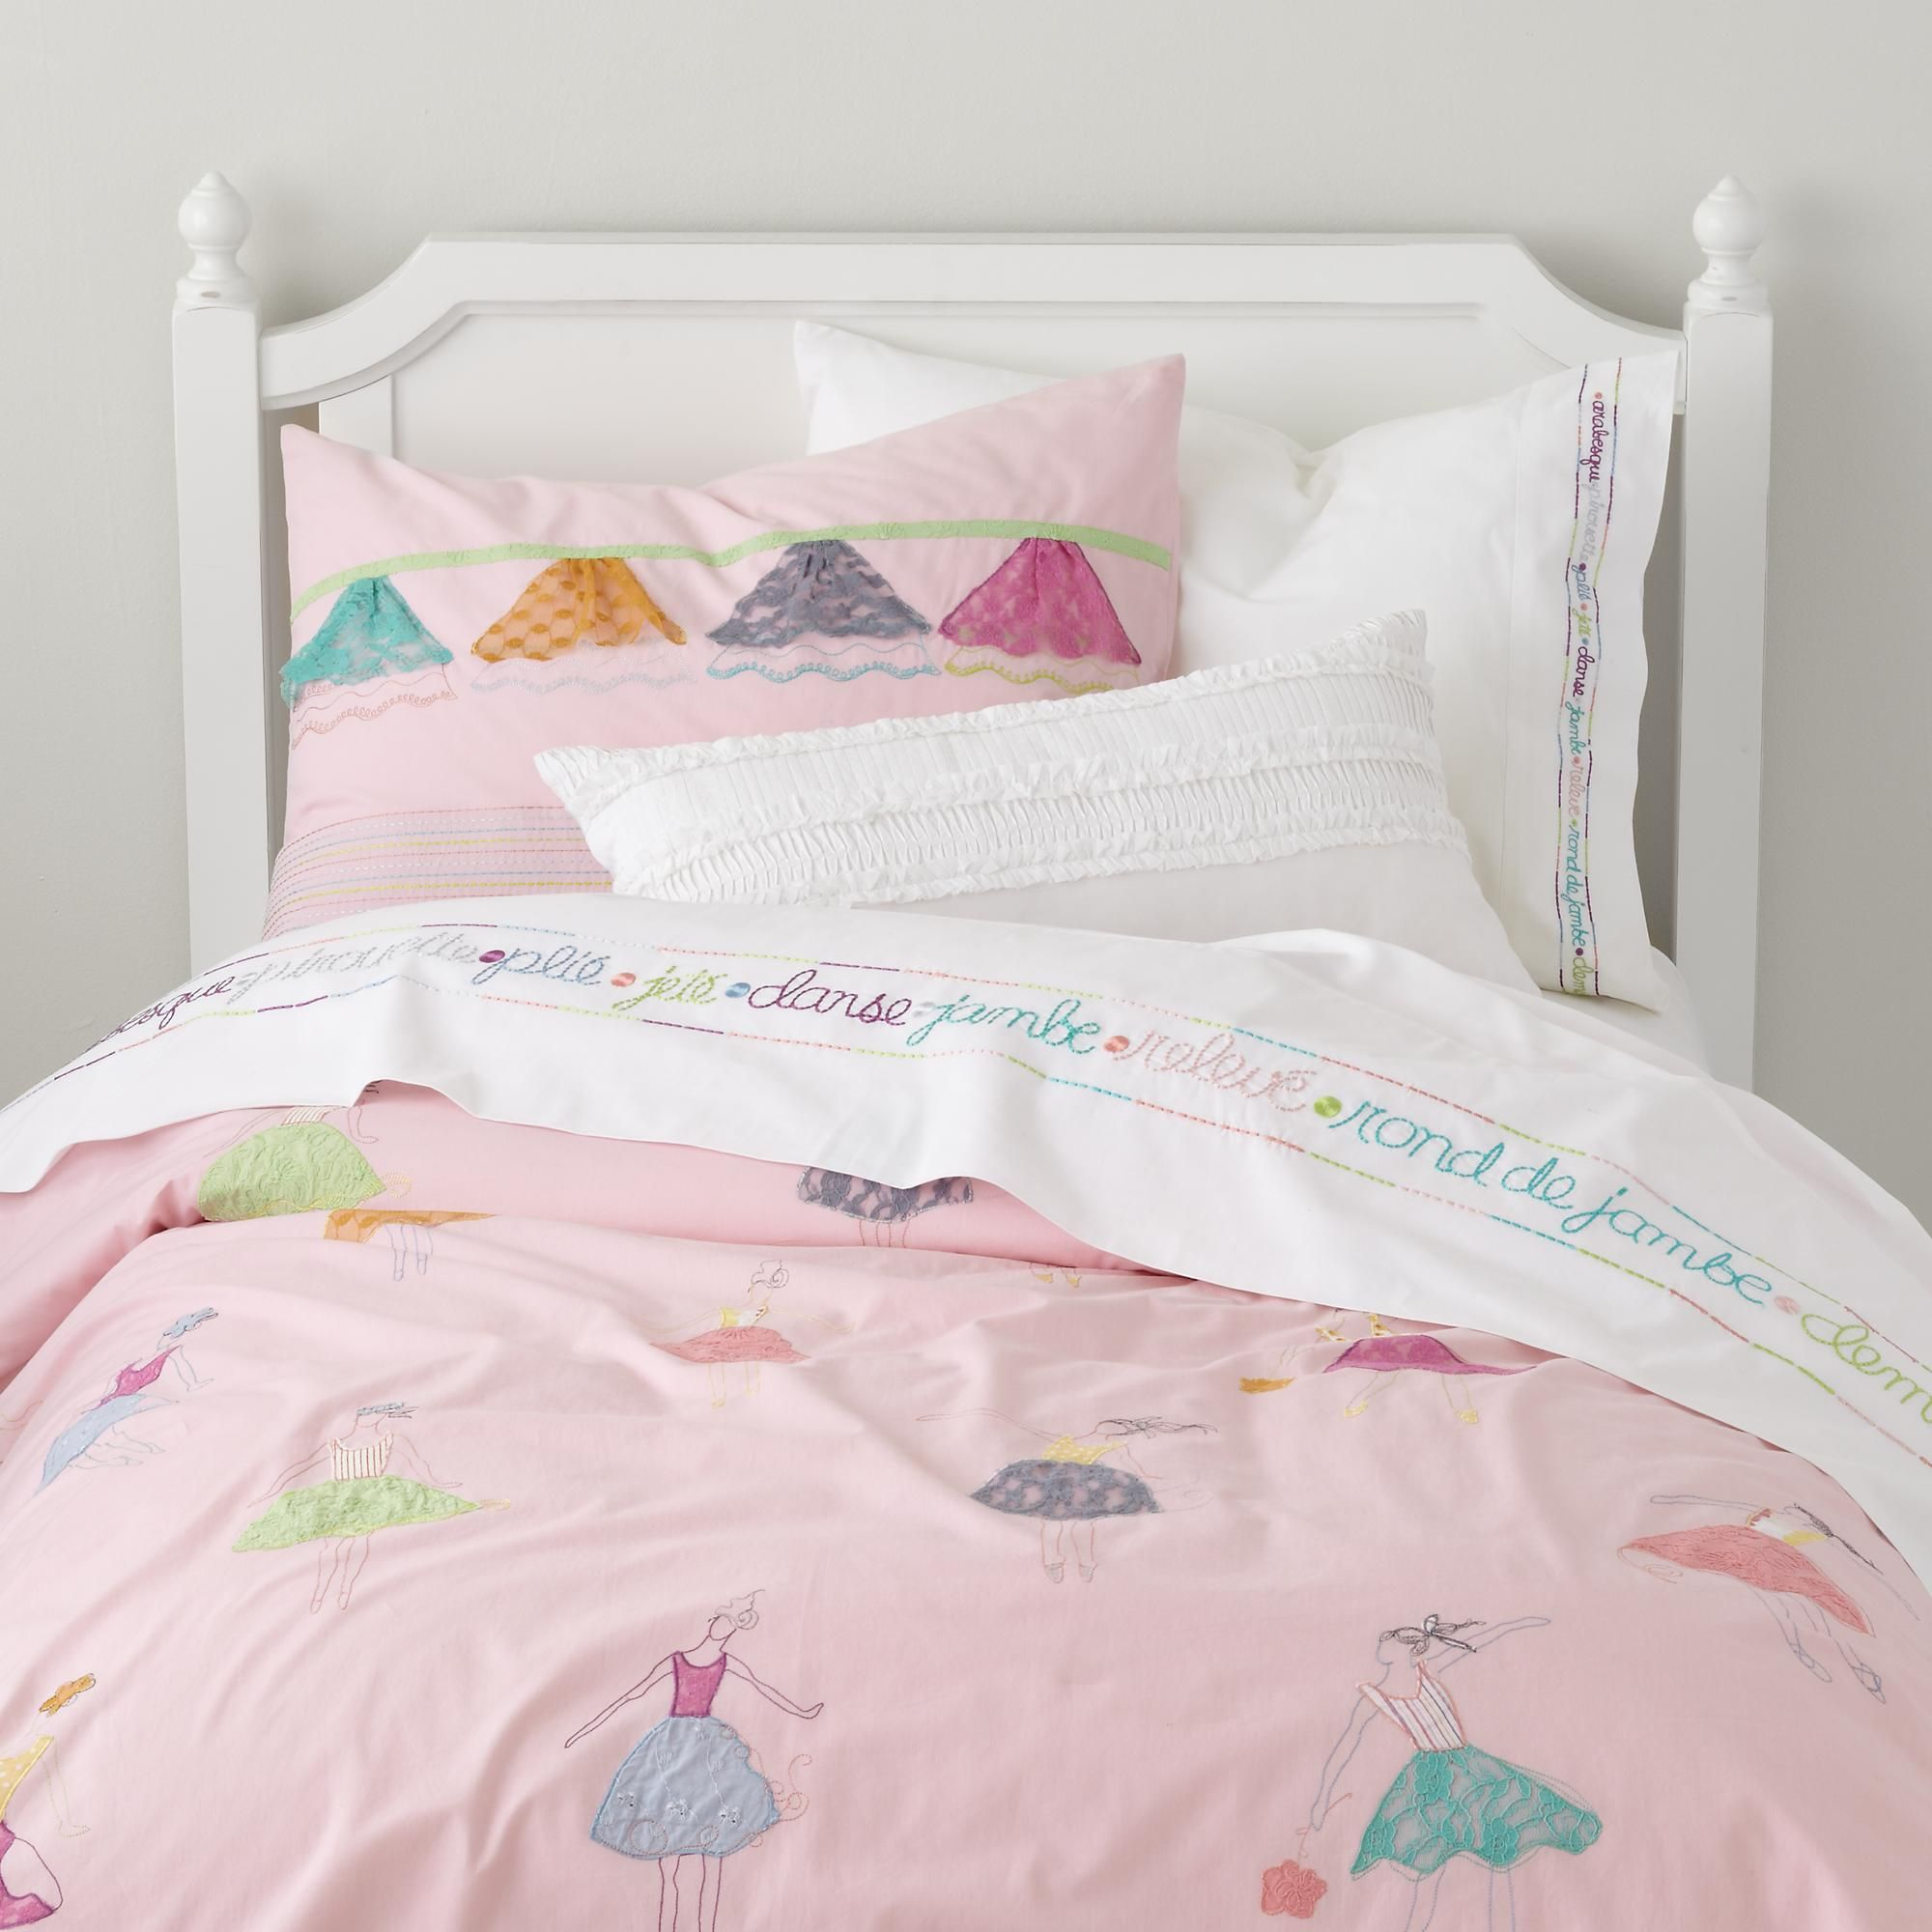 Tulle And The Gang Bedding From Land Of Nod